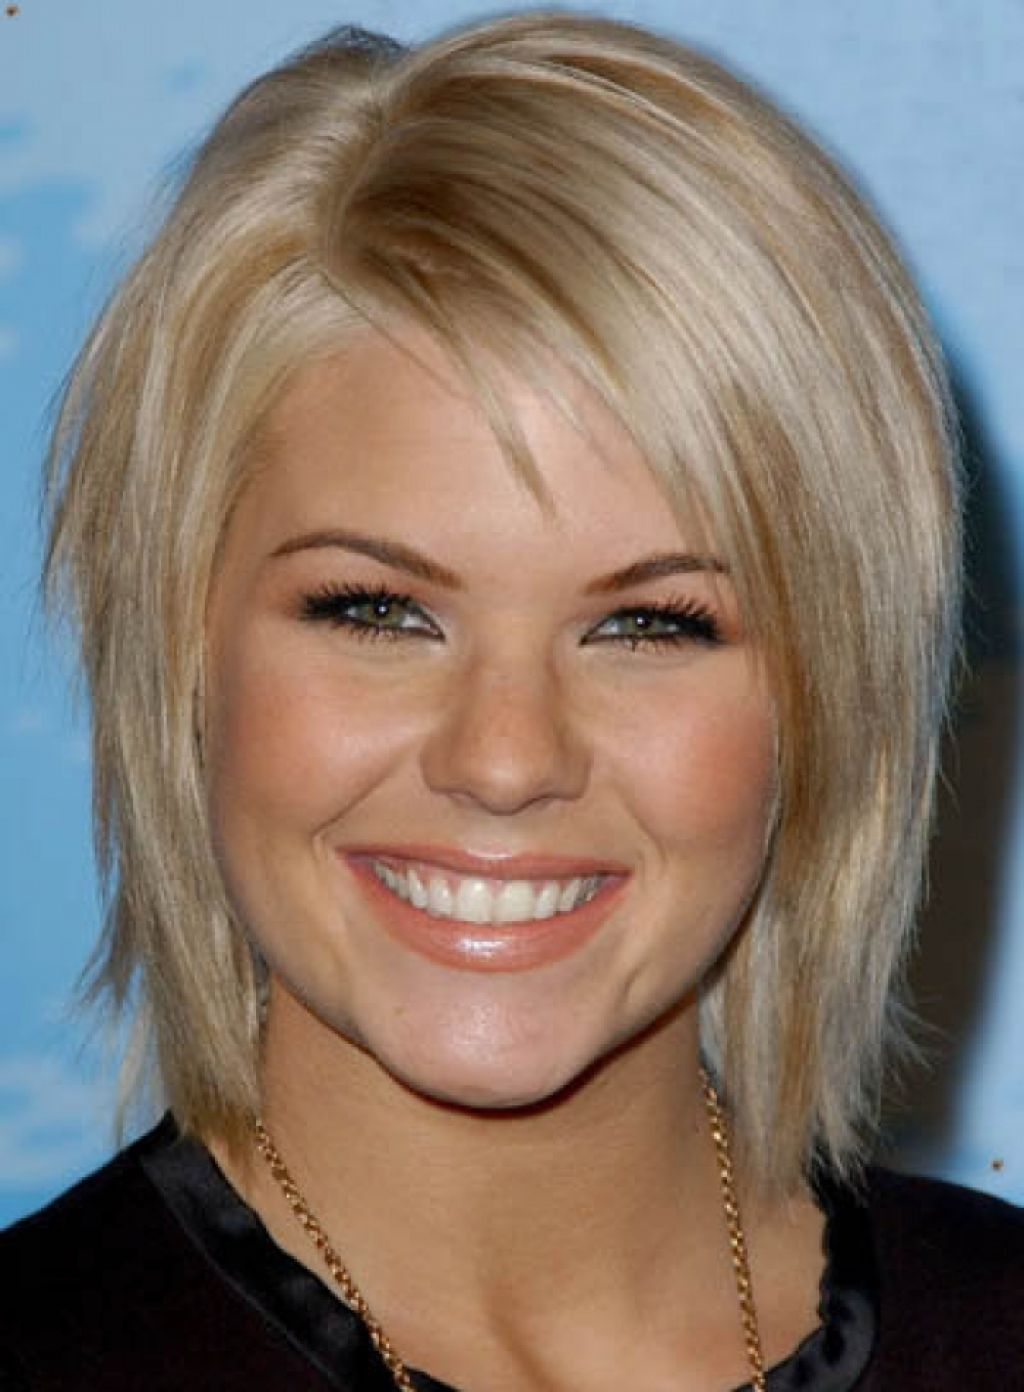 Short Easy Care Hairstyles - Best Short Hair Styles